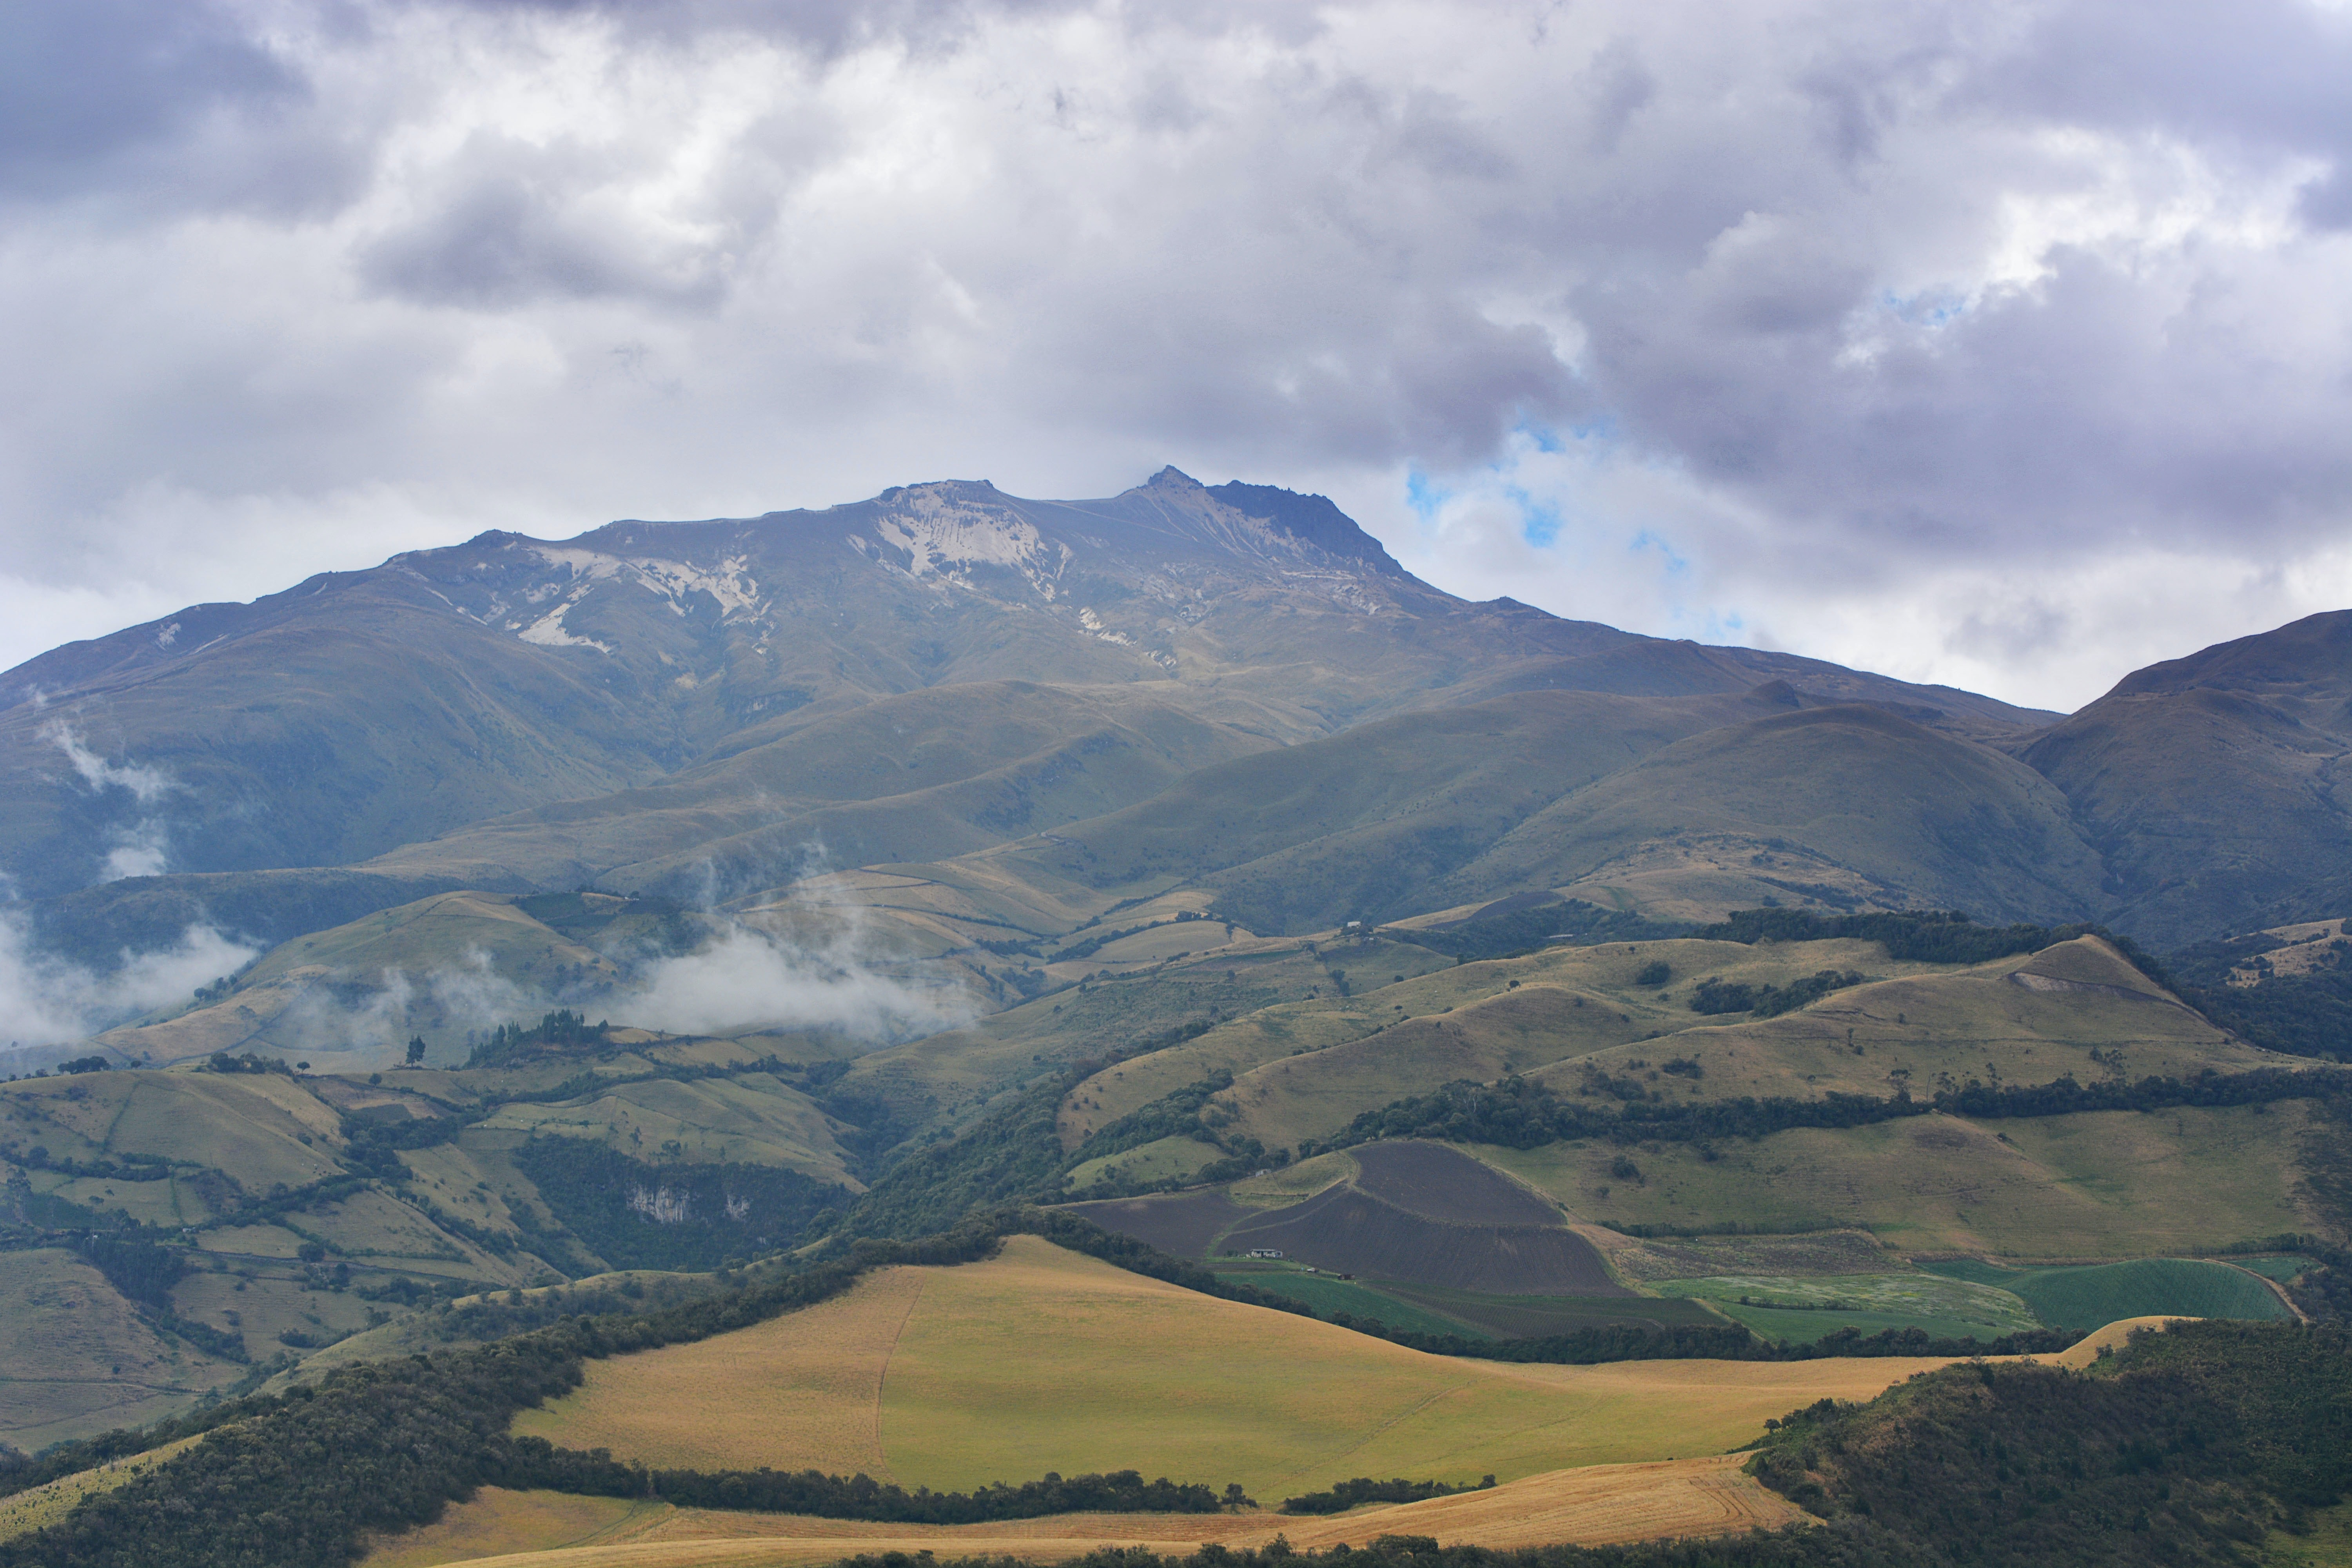 A patchwork of fields and forests at the foot of a mountain in Quito